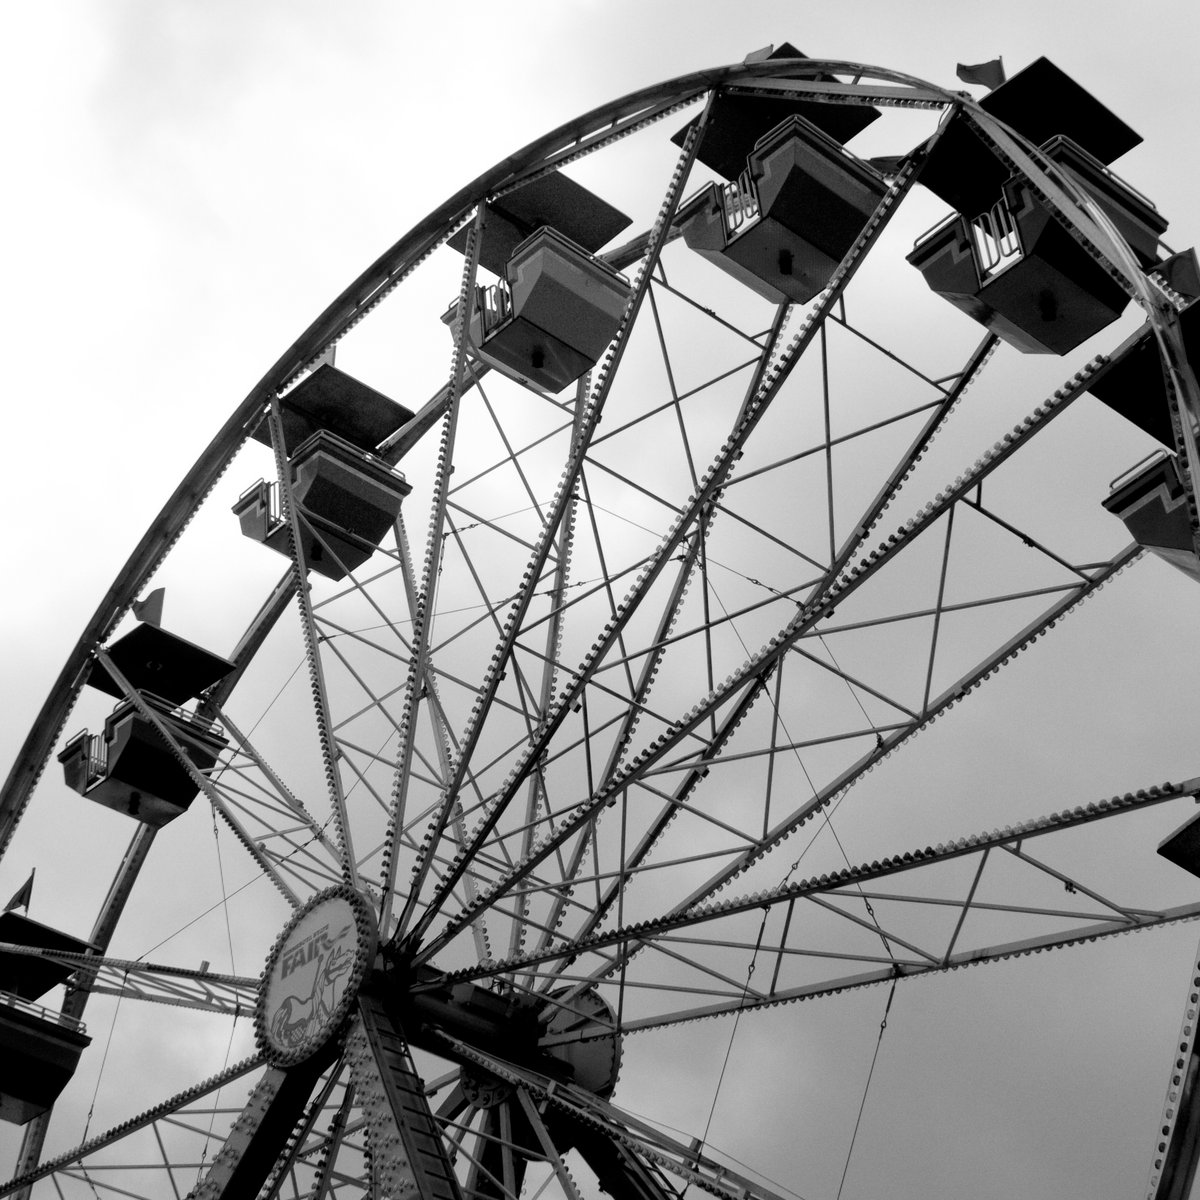 The Ferris Wheel | John Anealio